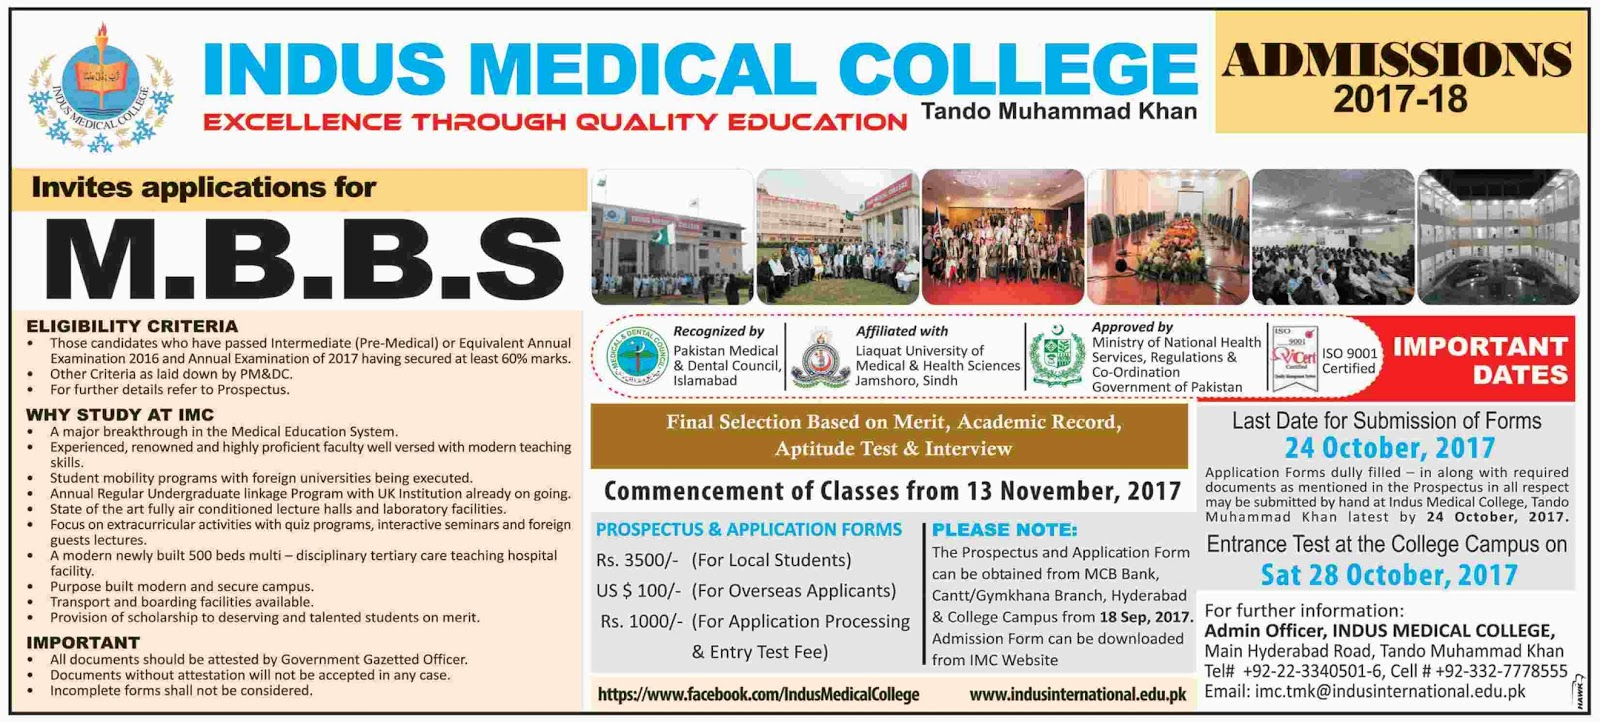 Admissions Open in Indus Medical College Tando Muhammad Khan - 2017